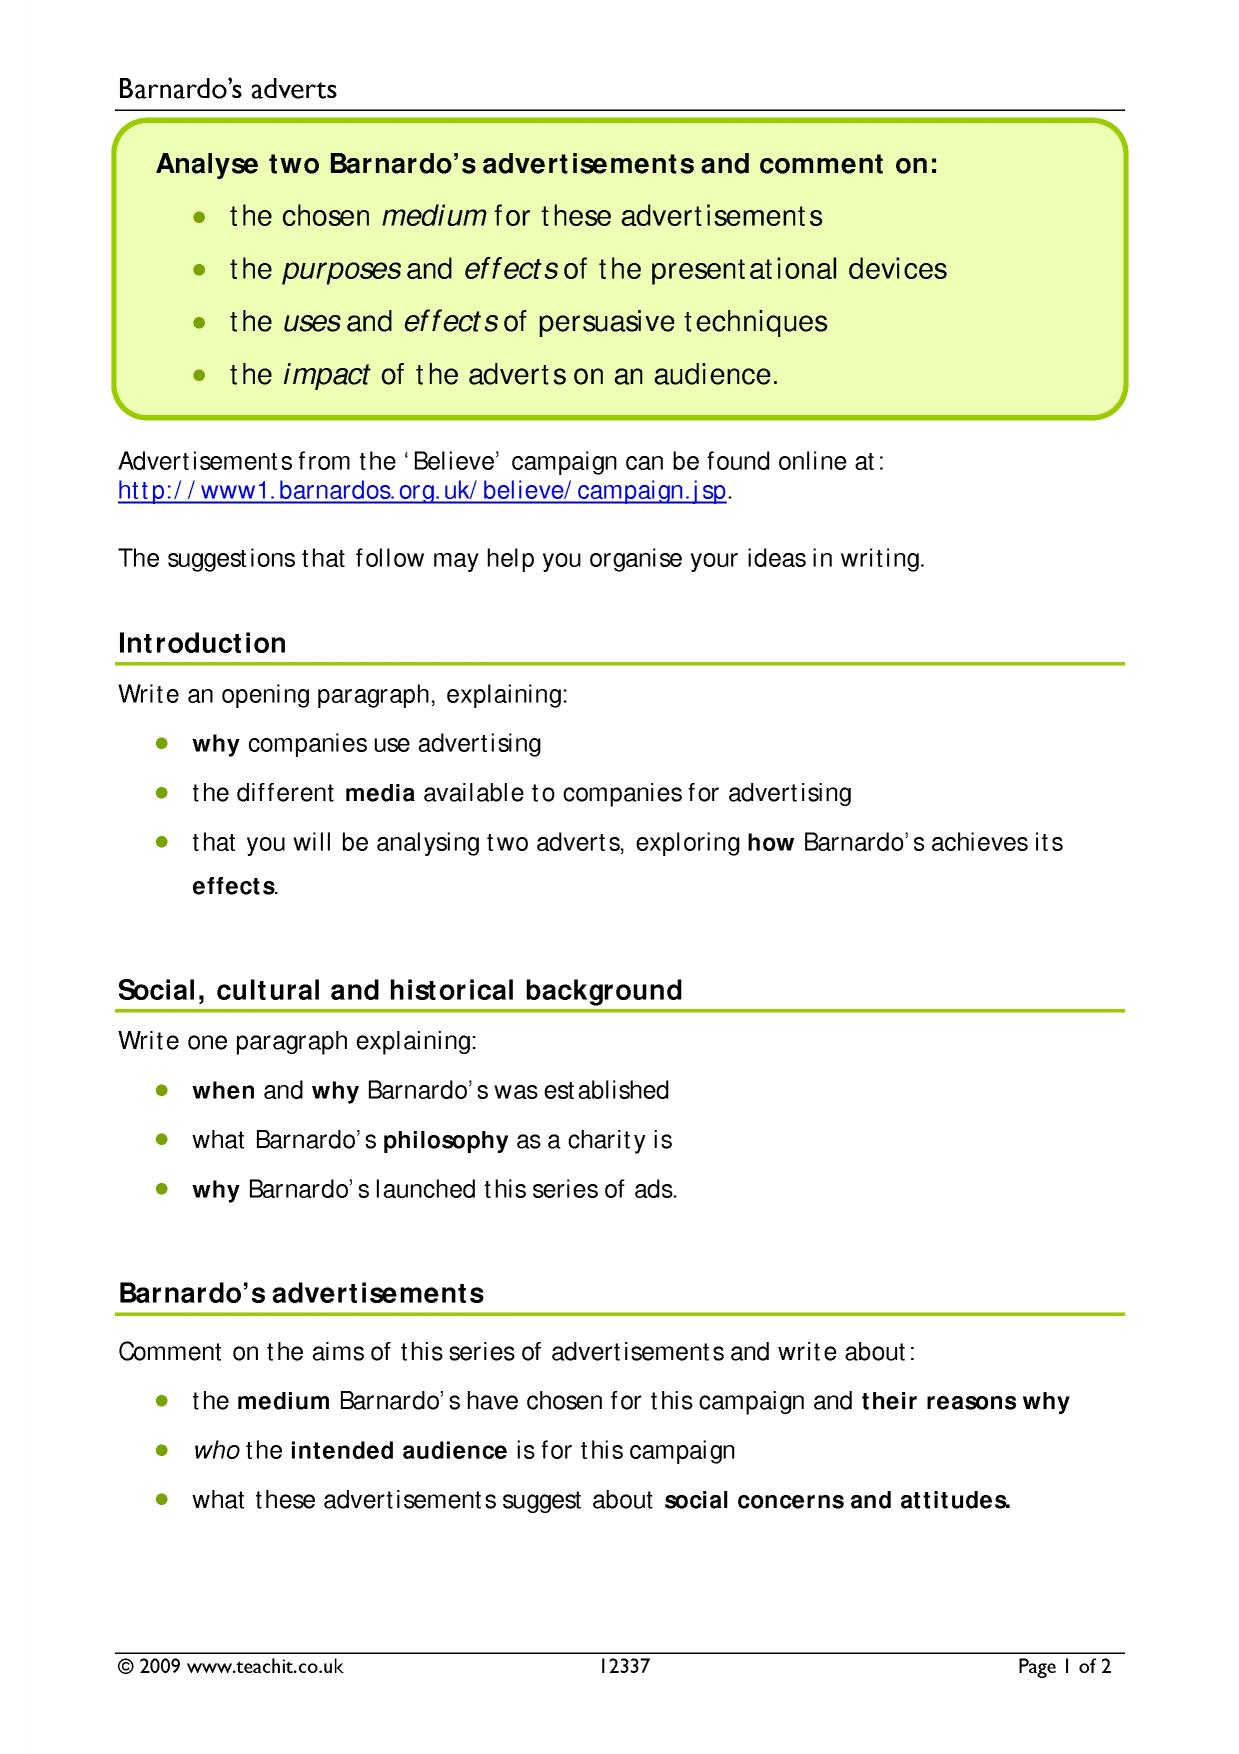 aqa gce coursework forms 6 coursework administration 38 several subject areas of the previous aqa gce computing specification have been retained enter and estimated entry forms.